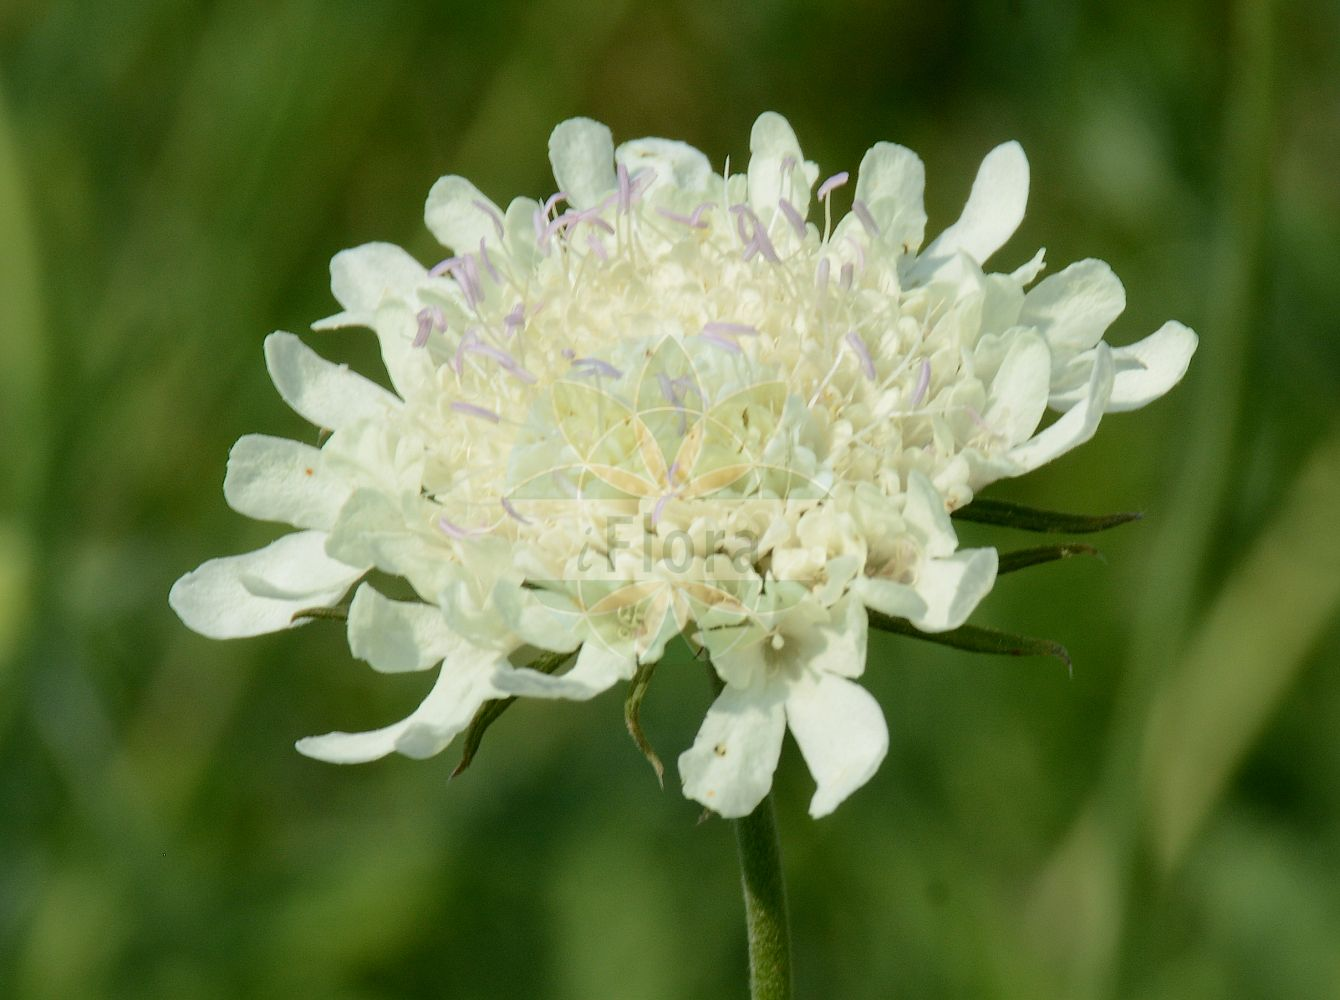 Foto von Cephalaria alpina. Das Foto wurde in Bonn, Nordrhein-Westfalen, Deutschland aufgenommen. ---- Photo of Cephalaria alpina.The picture was taken in Bonn, North Rhine-Westphalia, Germany.(Cephalaria alpina,Scabiosa alpina,Succisa alpina,Cephalaria,Caprifoliaceae,Geissblattgewaechse,Honeysuckle family)